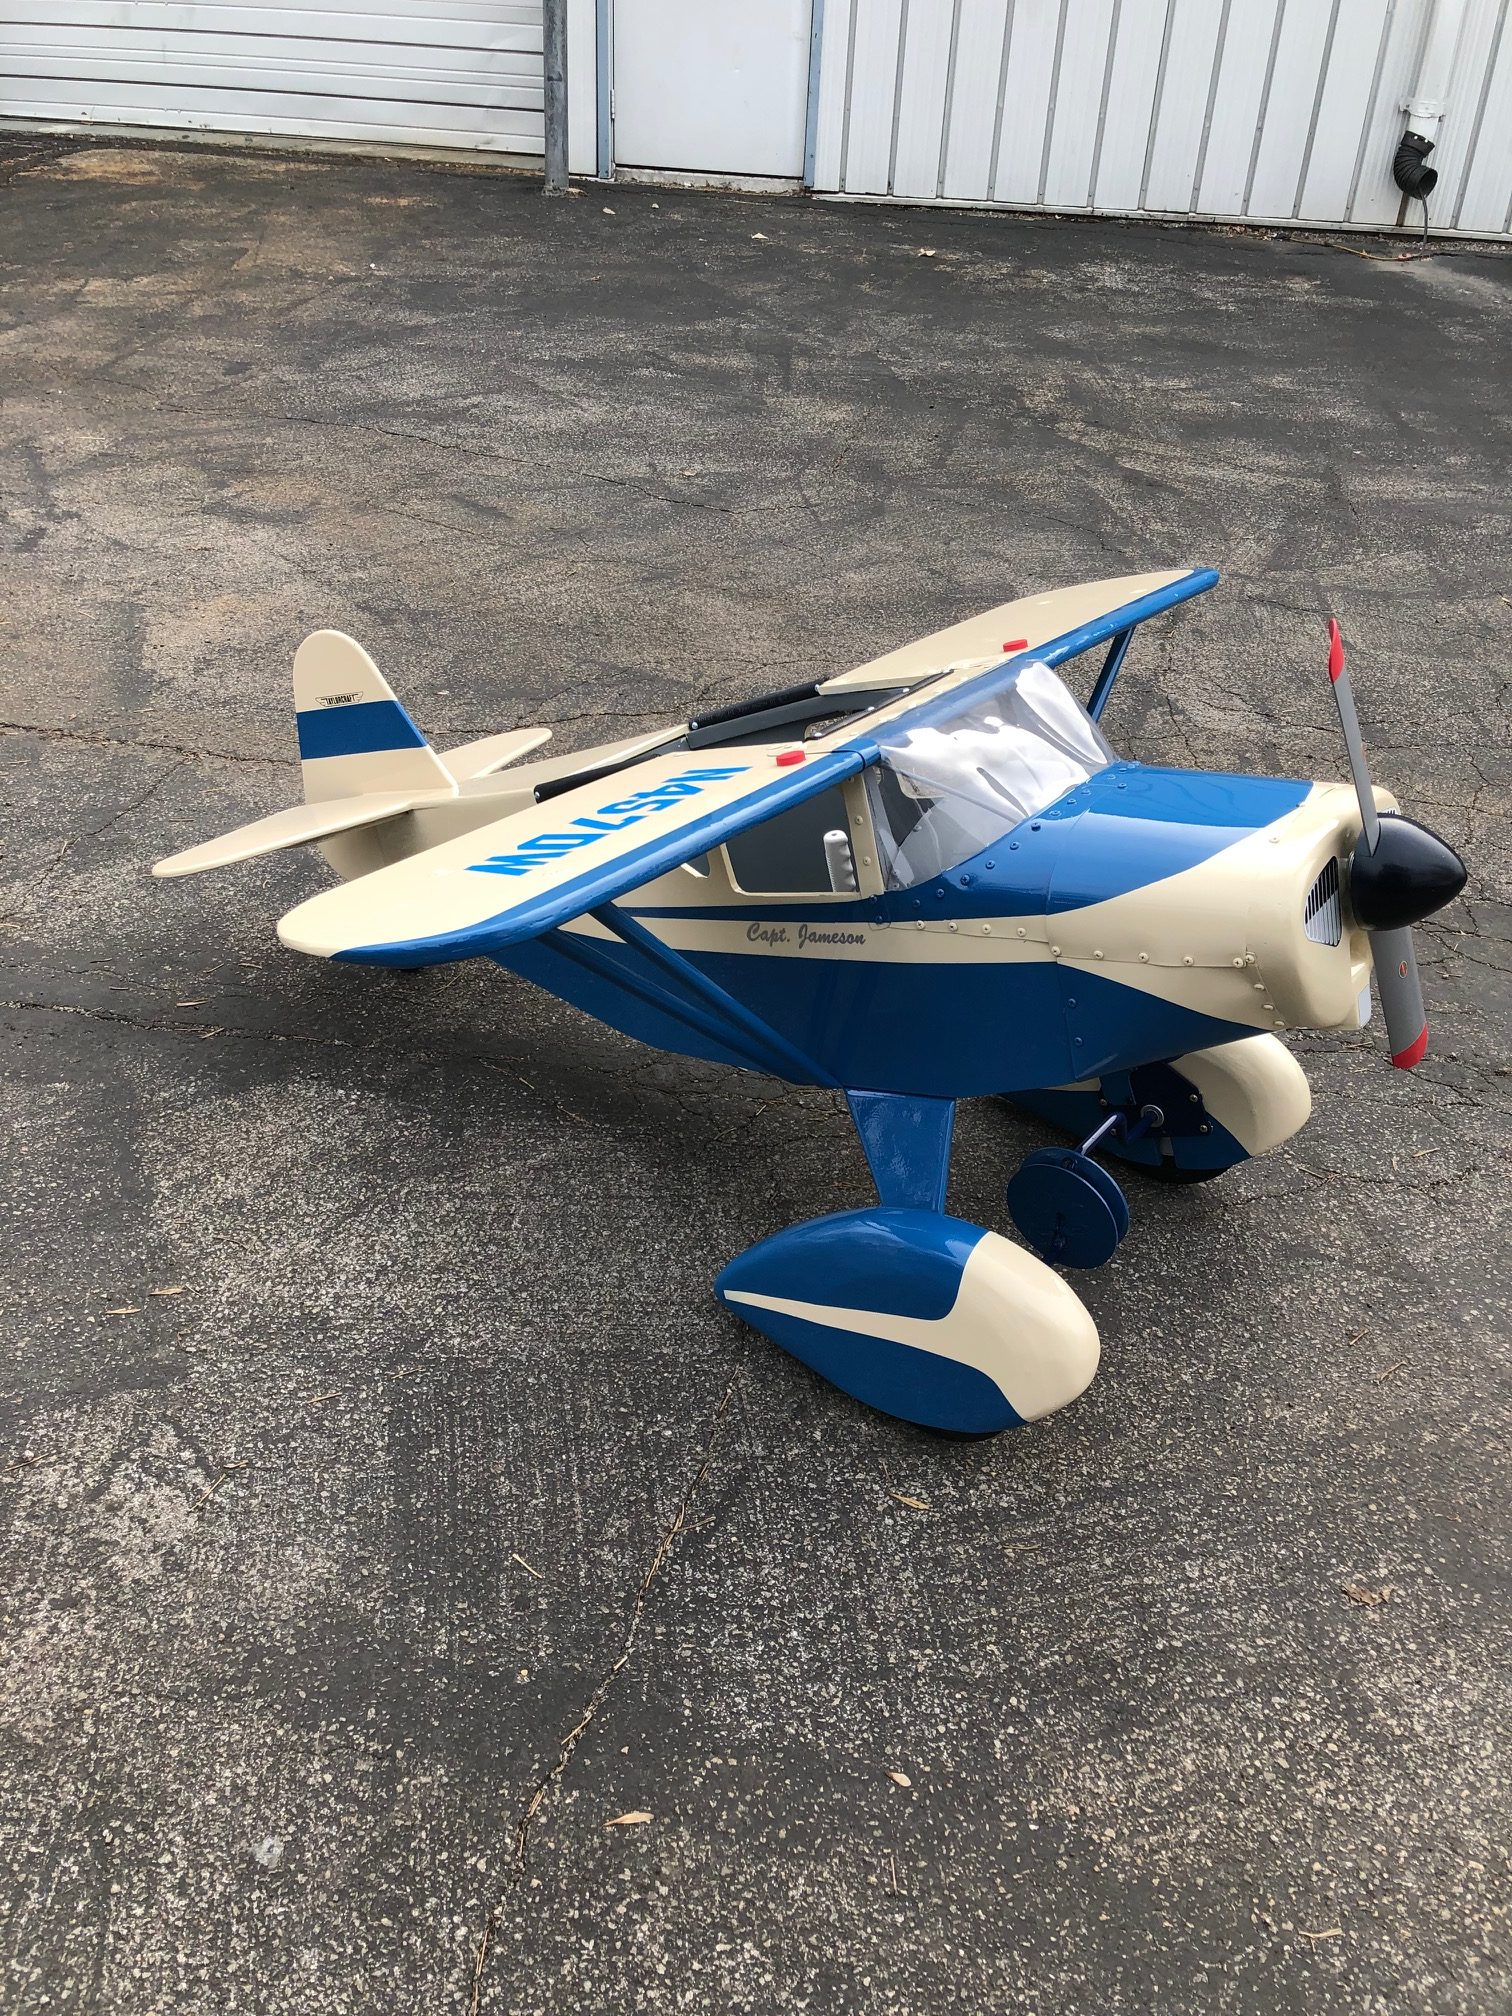 Blue and white Taylorcraft Pedal Plane on the ground